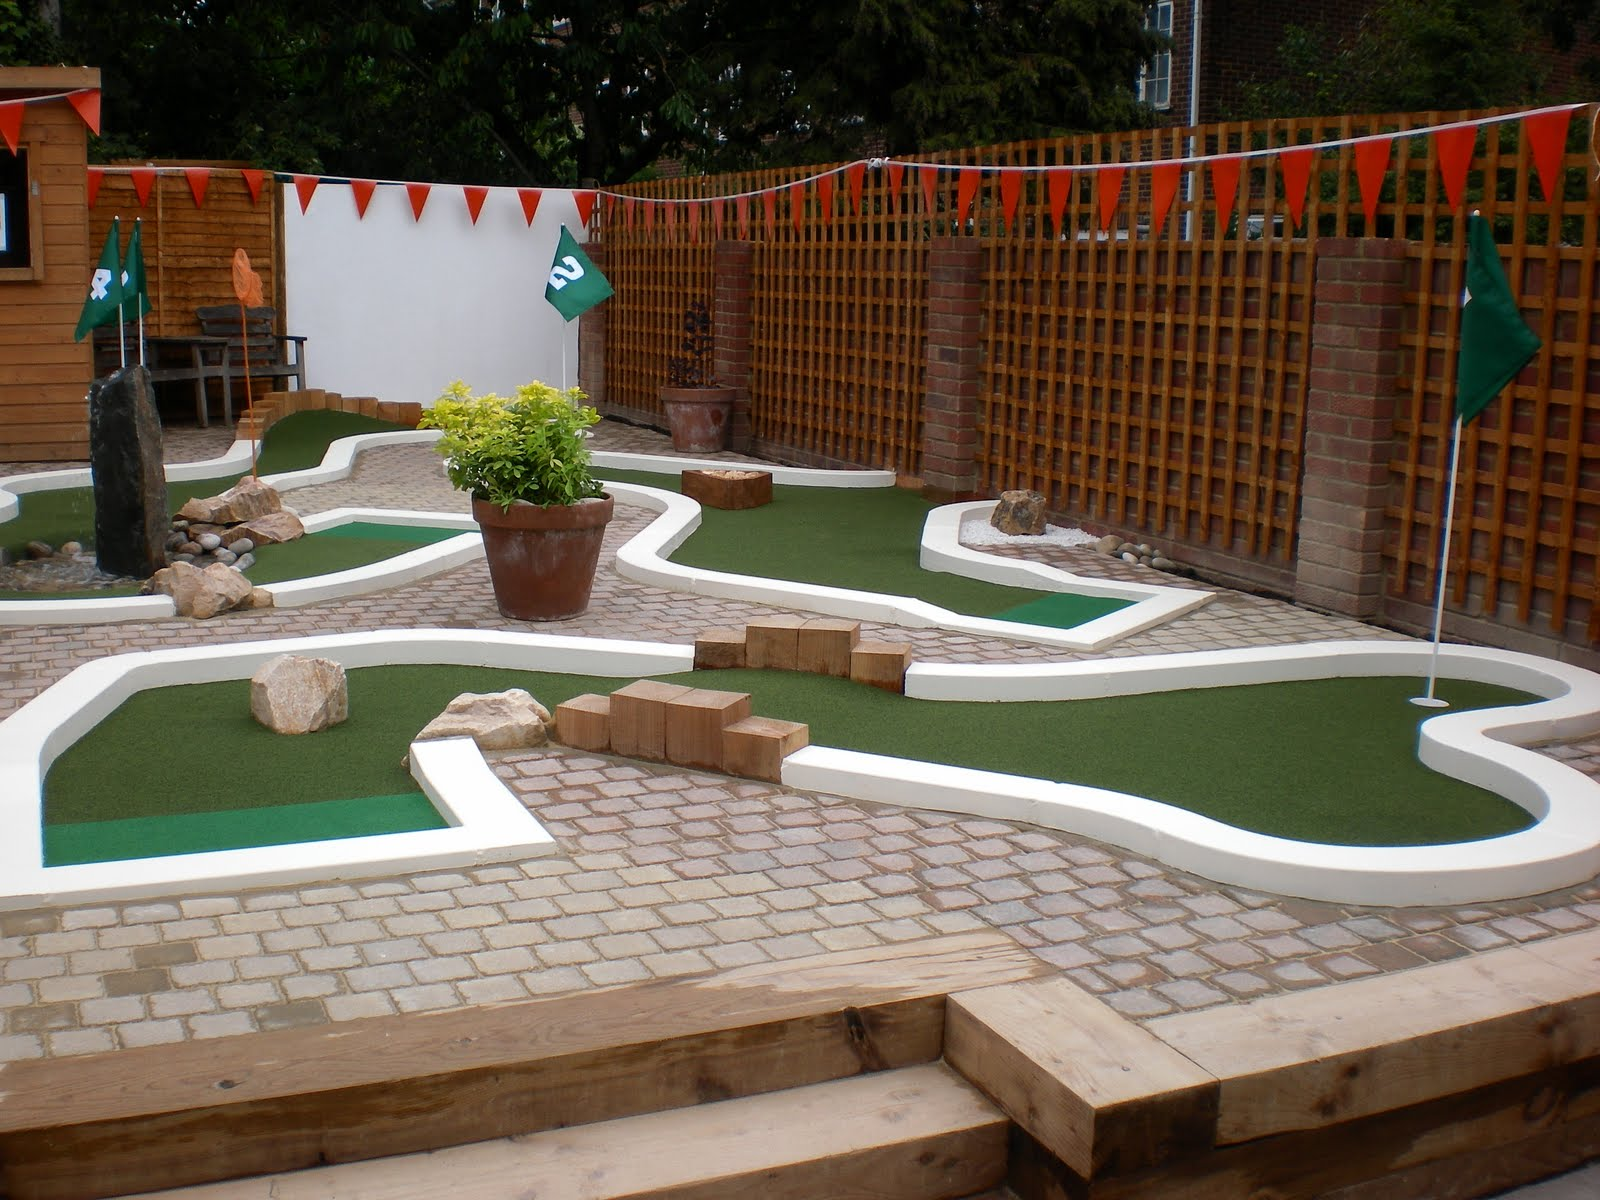 The ham and egger files urbancrazy minigolf course party in east finchley for Garden city mini golf